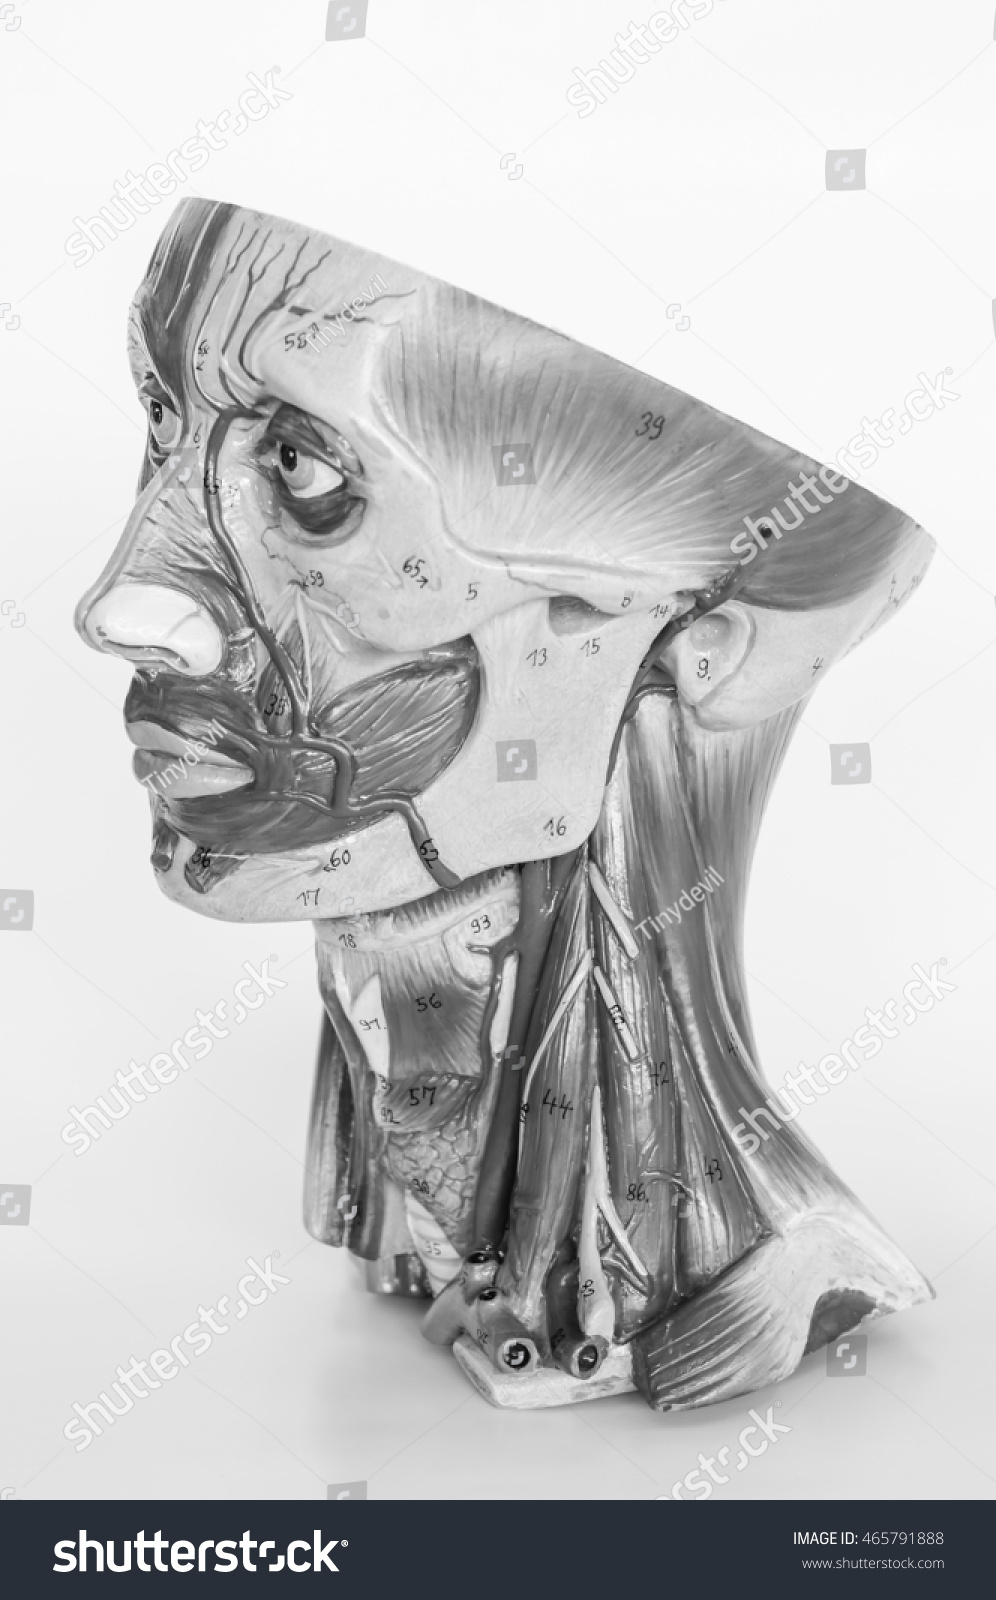 Royalty Free Face Muscle Anatomy With Black And 465791888 Stock